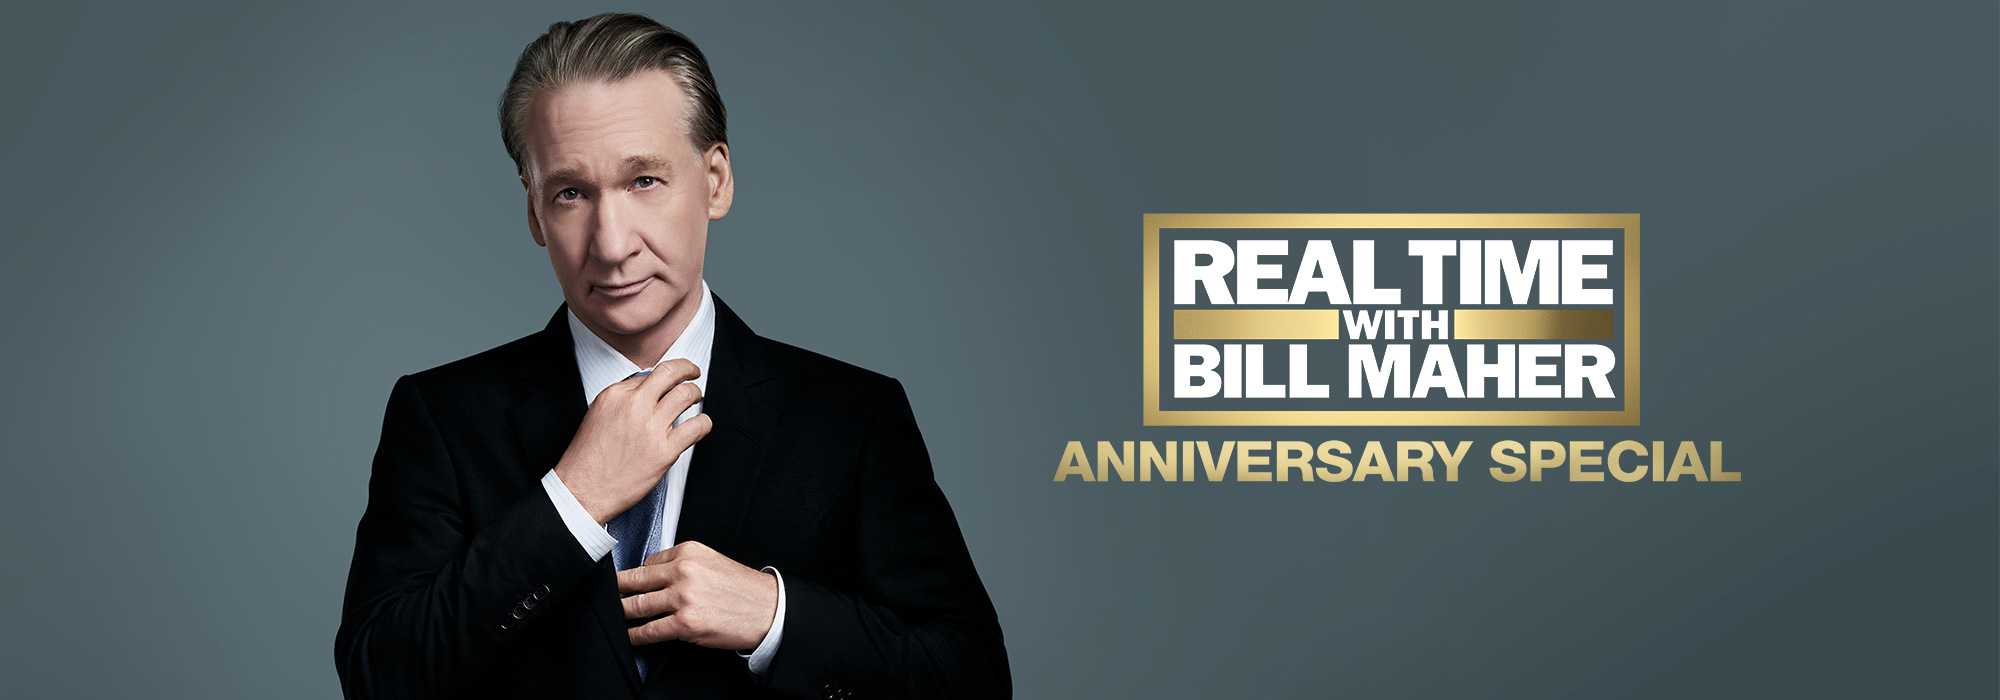 real time with bill maher anniversary special